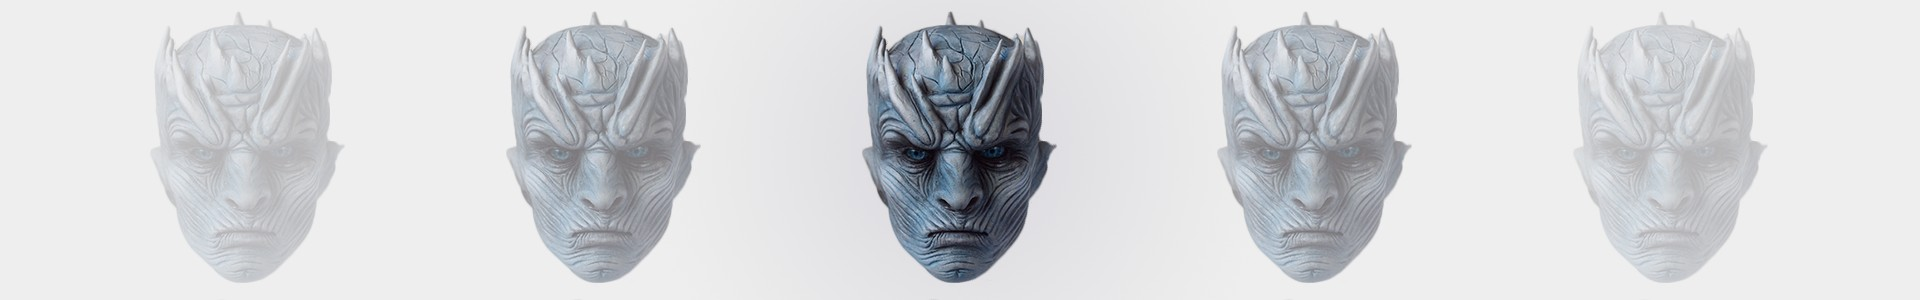 Criando o The Night King de Game Of Thrones com argila